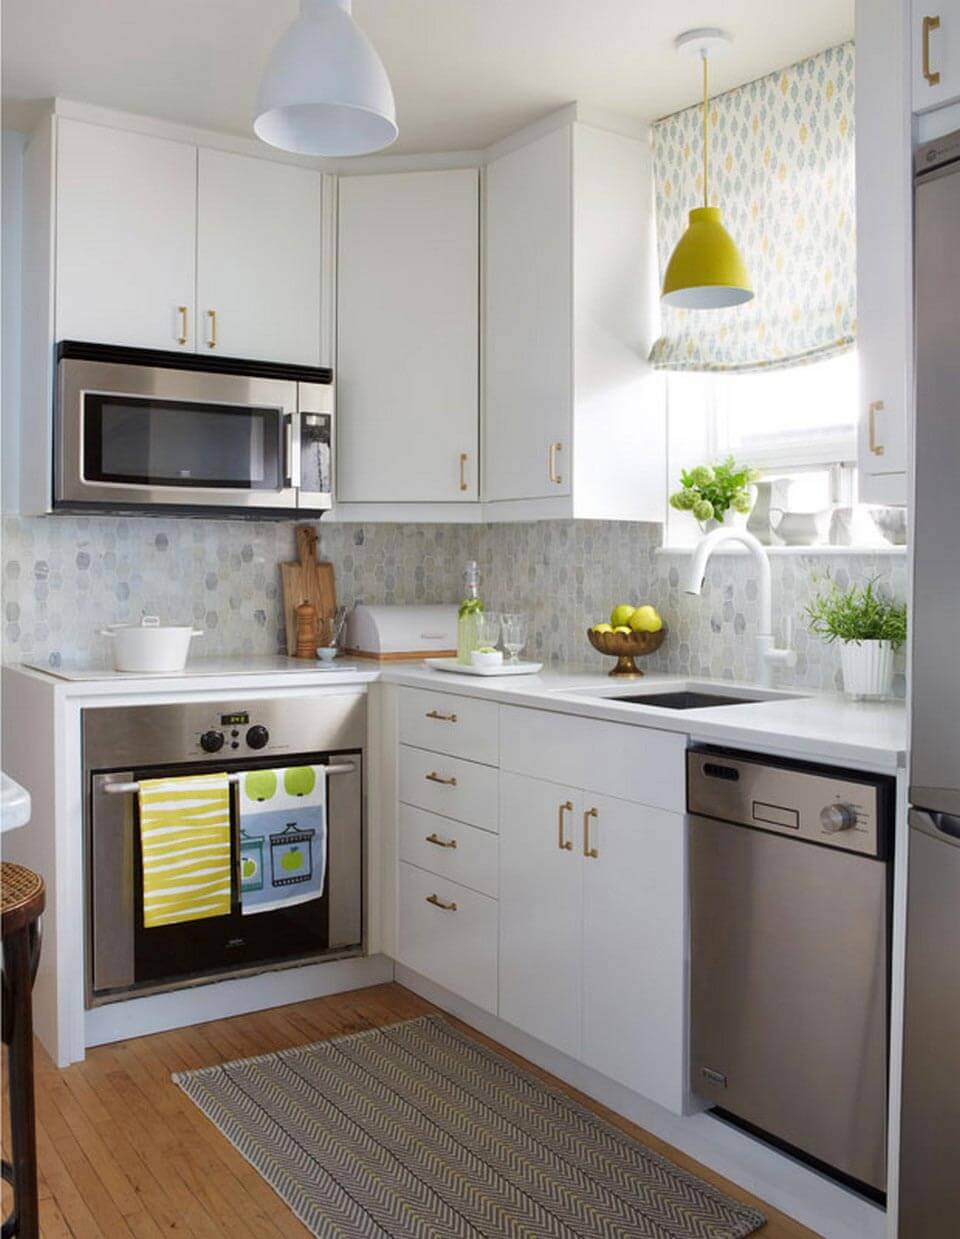 30 Best Small Kitchen Decor and Design Ideas for 2020 on Kitchen Decoration Ideas  id=67674